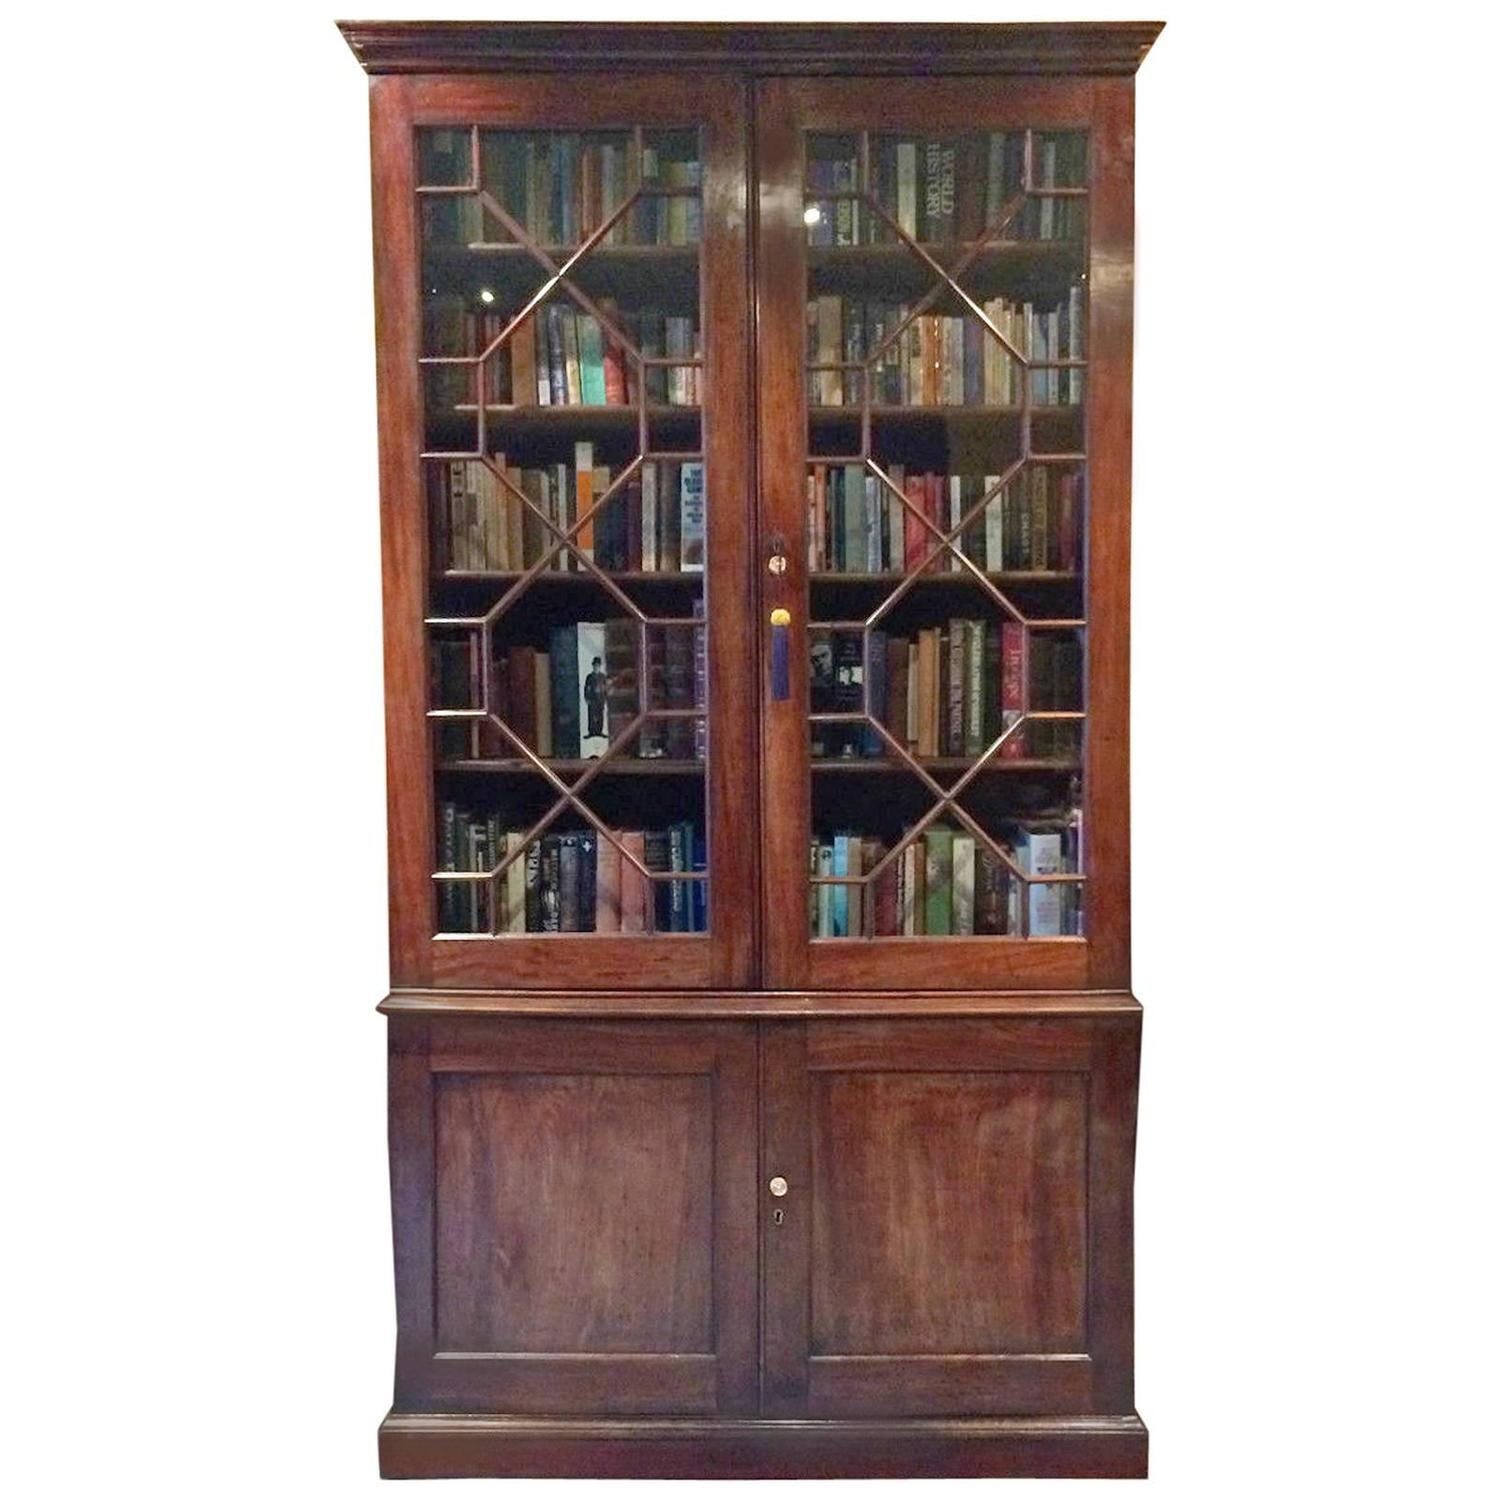 #925339 Antique Bookcase Victorian Mahogany Display Cabinet Two  with 1500x1500 px of Recommended Mahogany Display Cabinets With Glass Doors 15001500 save image @ avoidforclosure.info